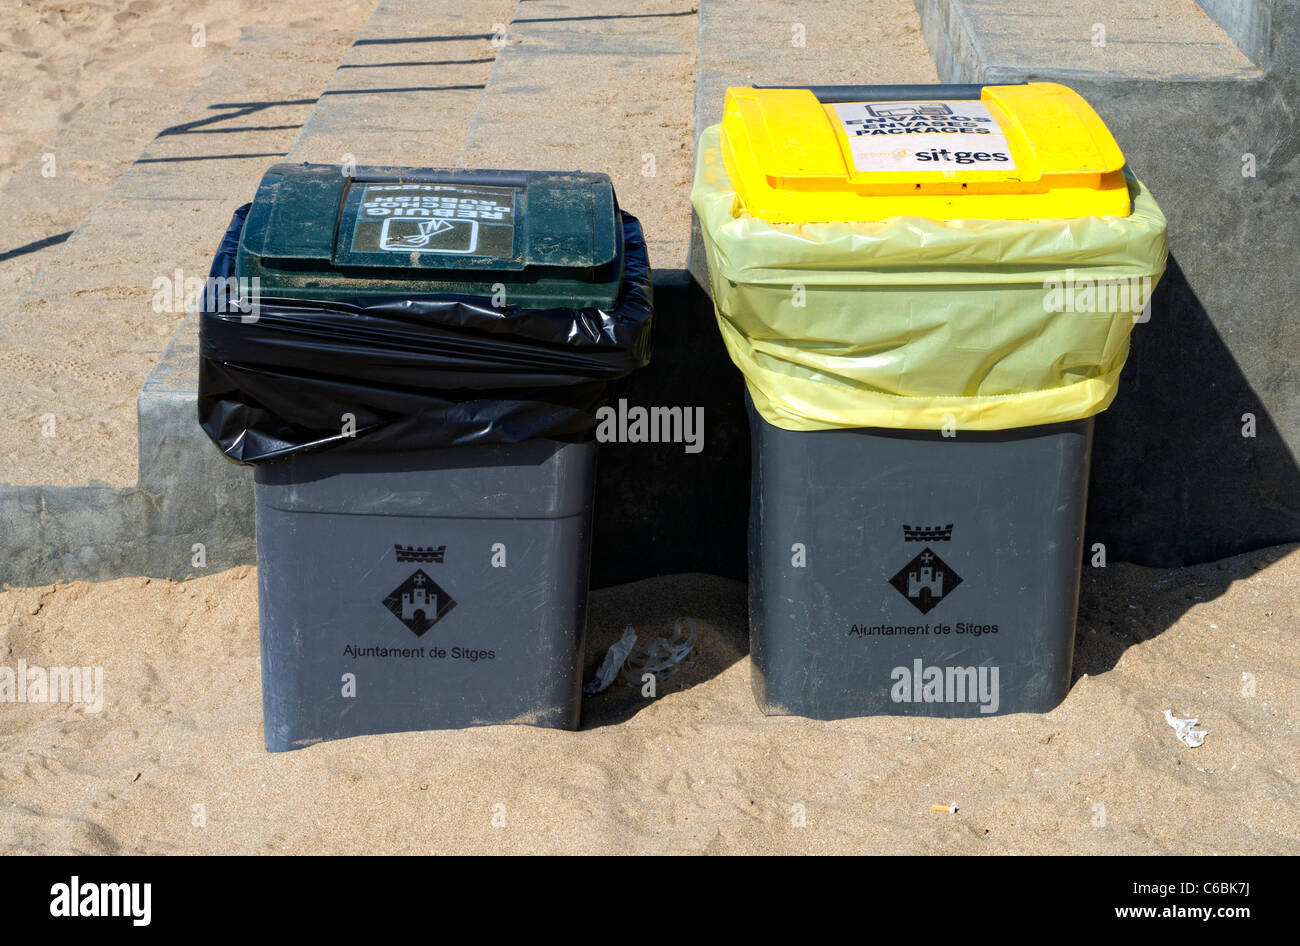 Two rubbish bins on a Spanish beach - Stock Image